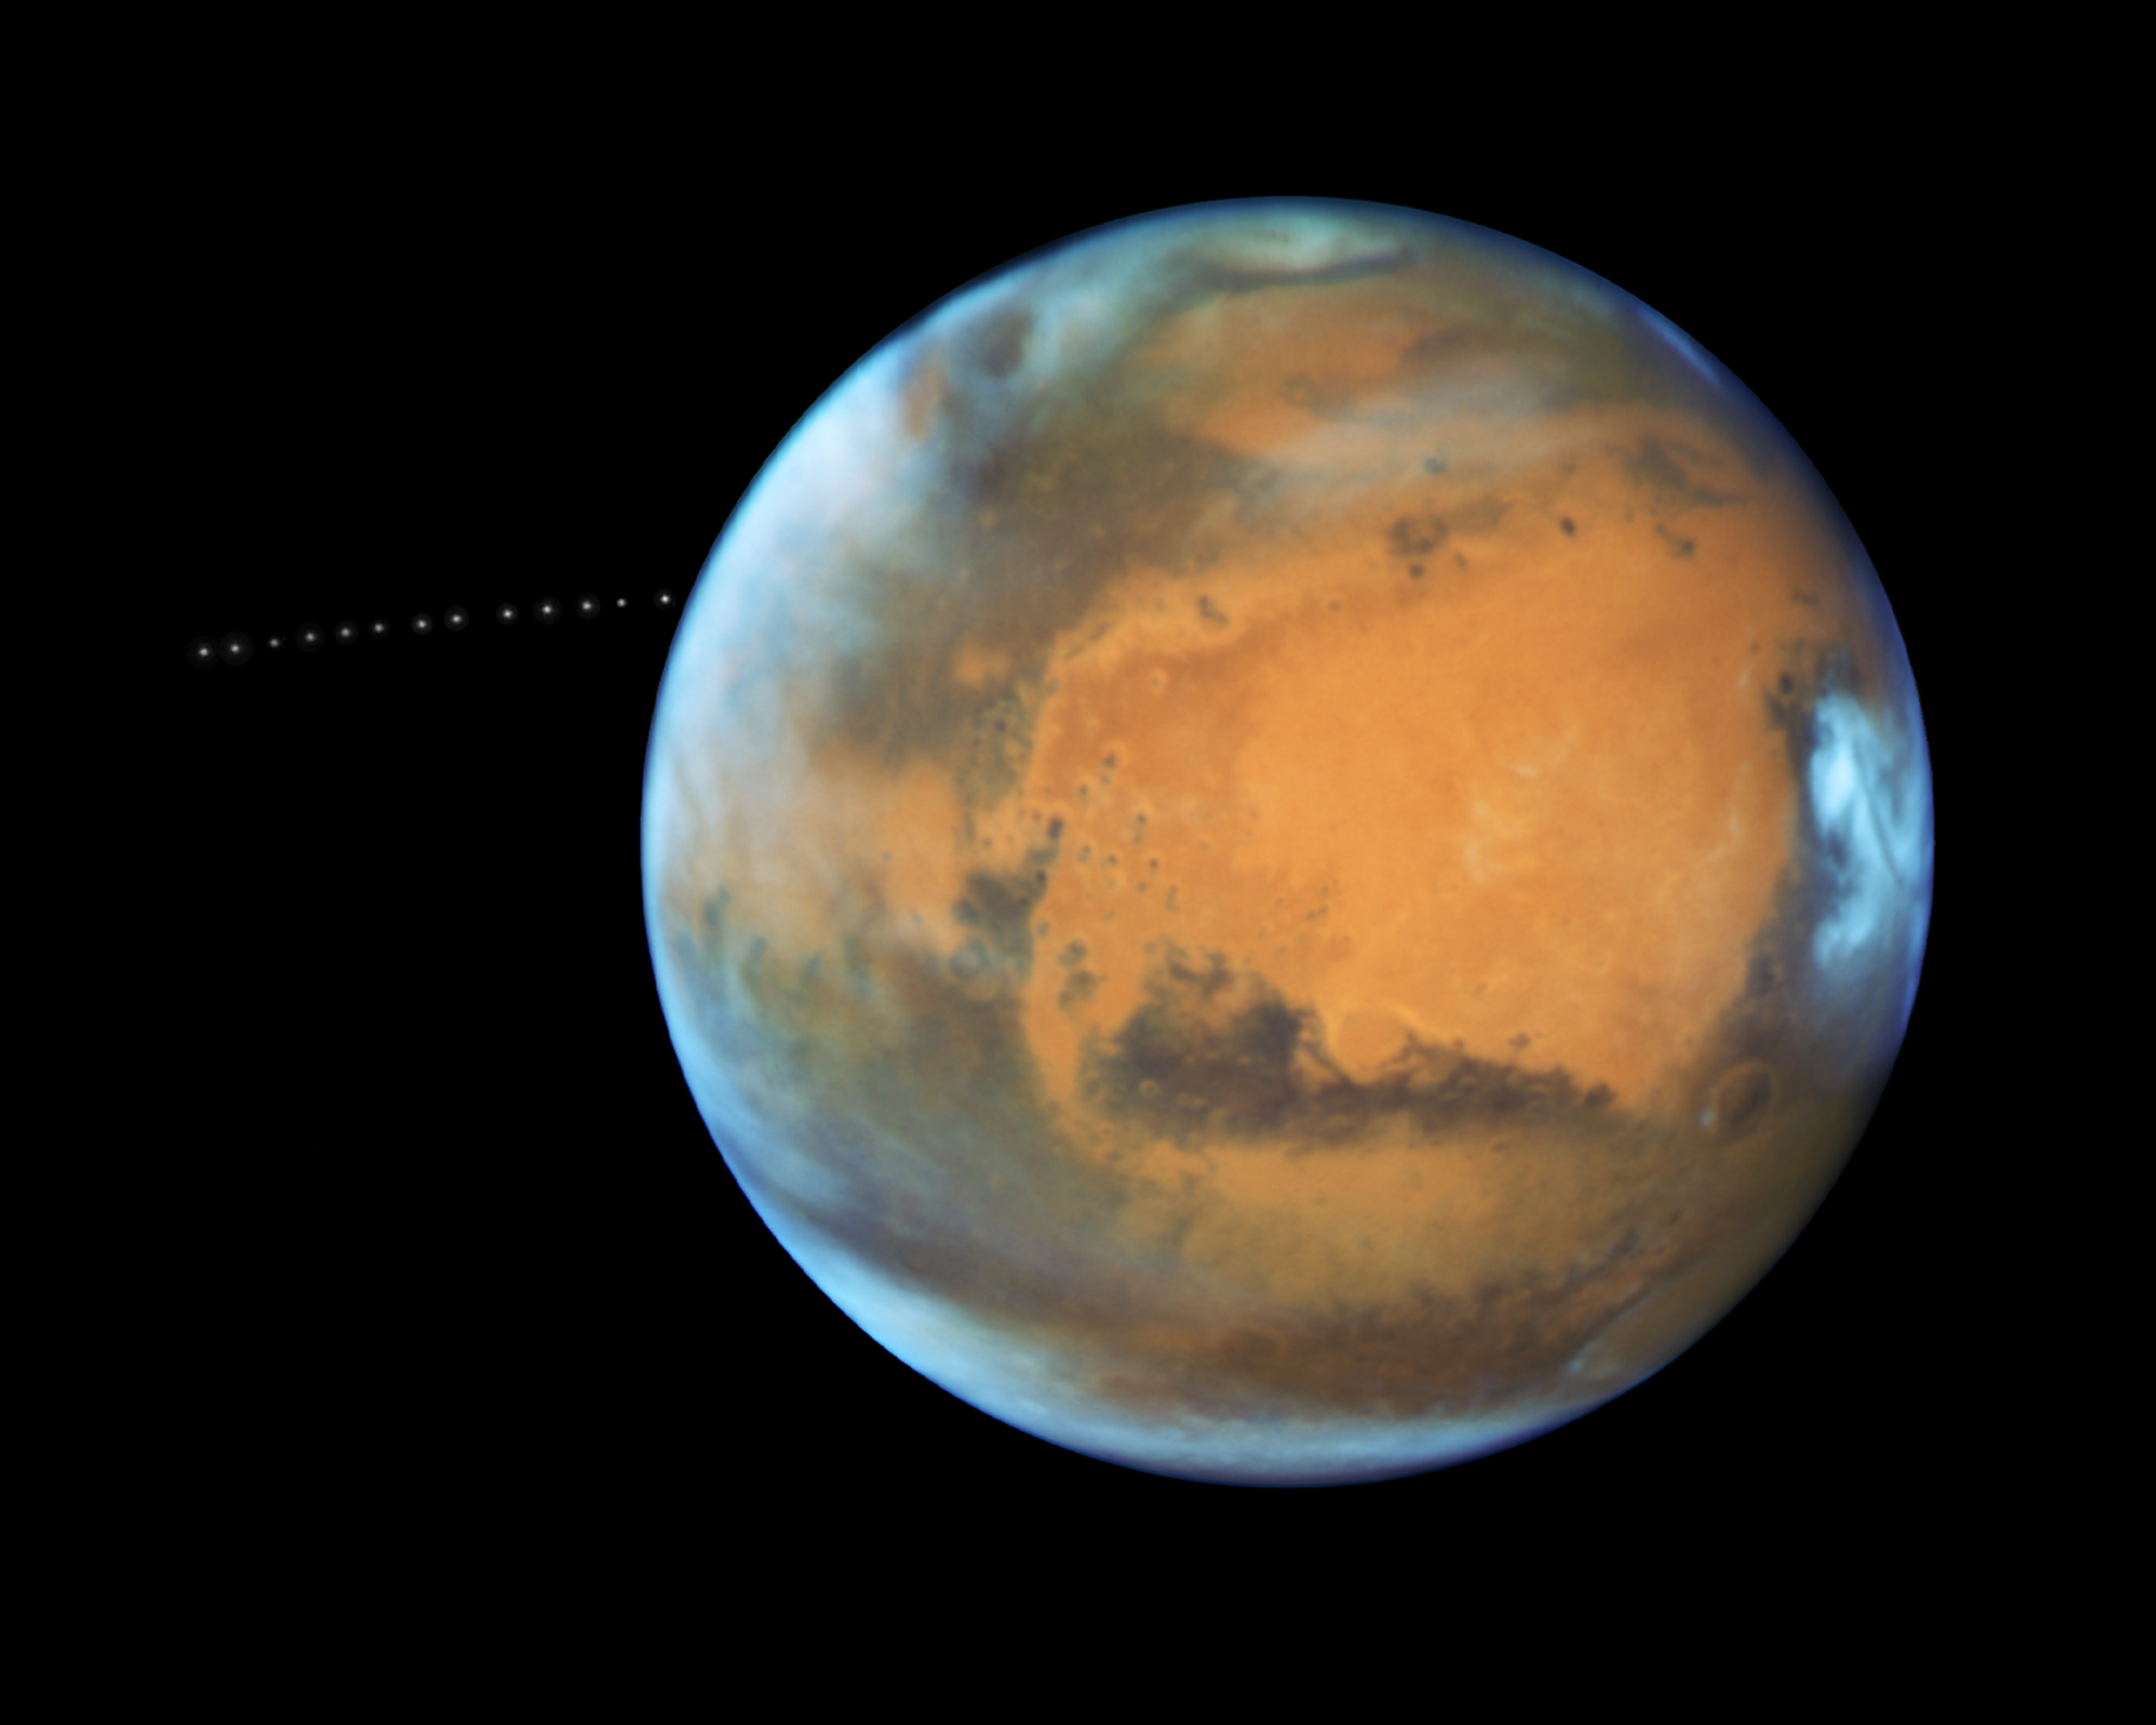 nasa-hubble-martian-moon-orbiting-mars